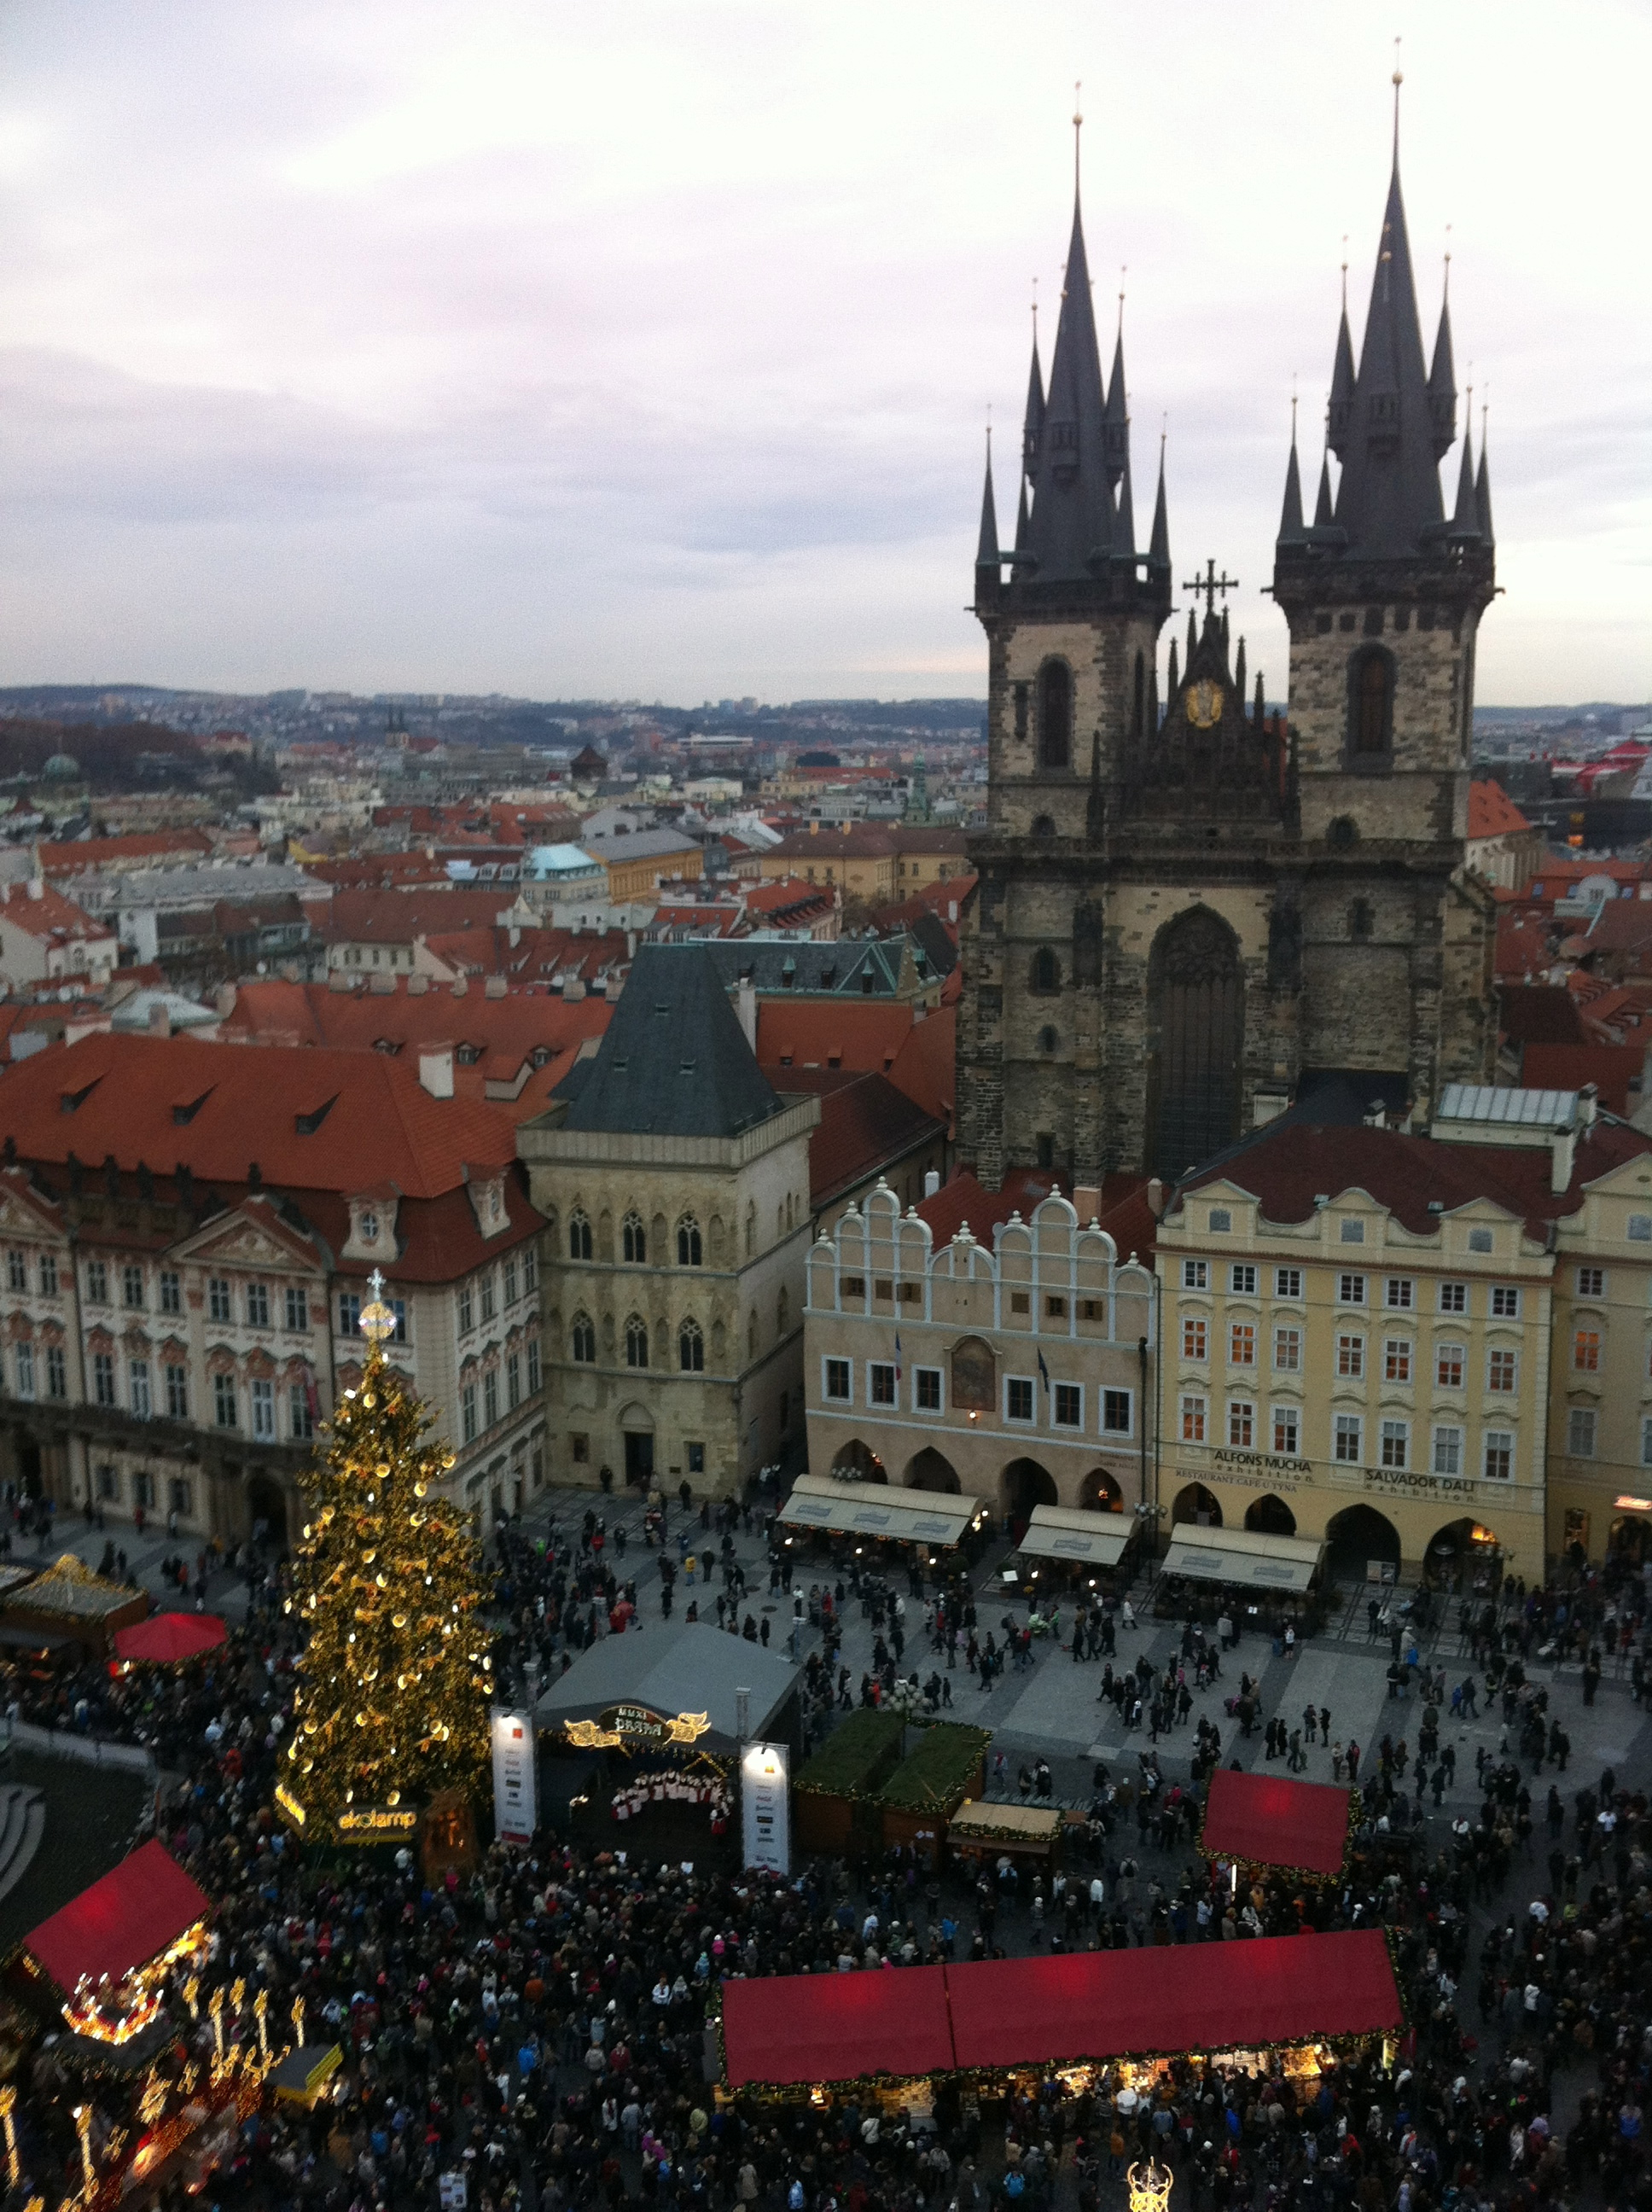 View of the Old Town Square Christmas Markets from the Astronomical Tower.